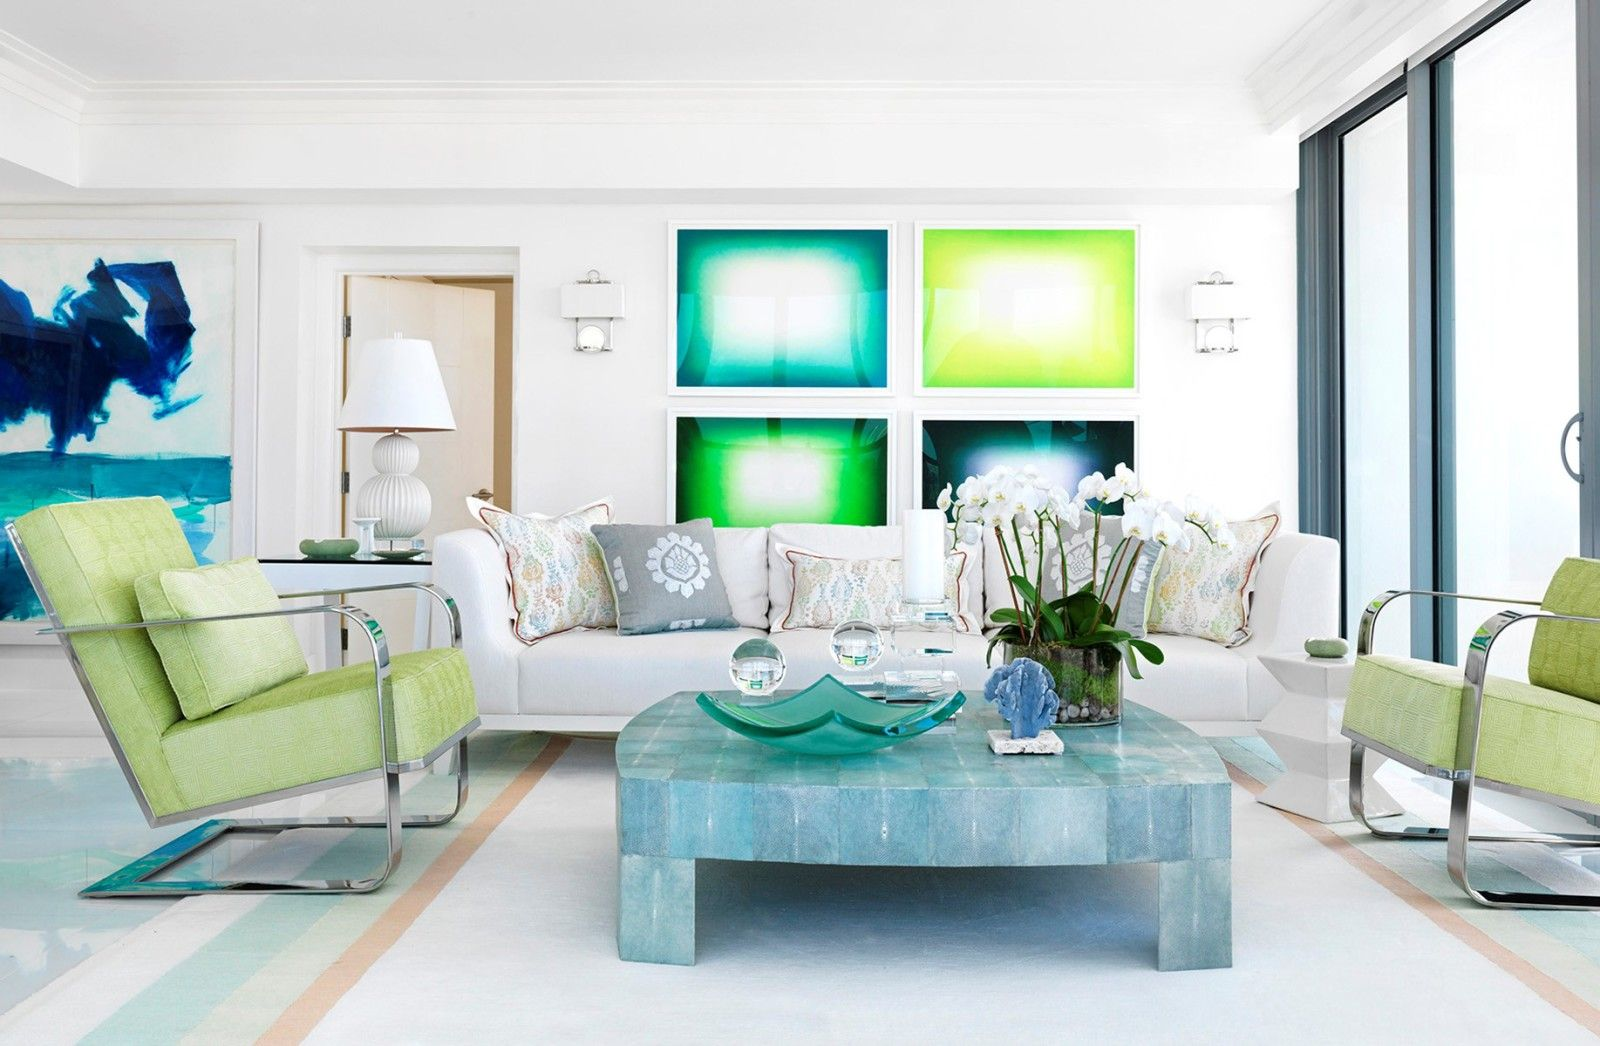 house beautiful 2015 miami fl richard keith langham on amazing inspiring modern living room ideas for your home id=95465